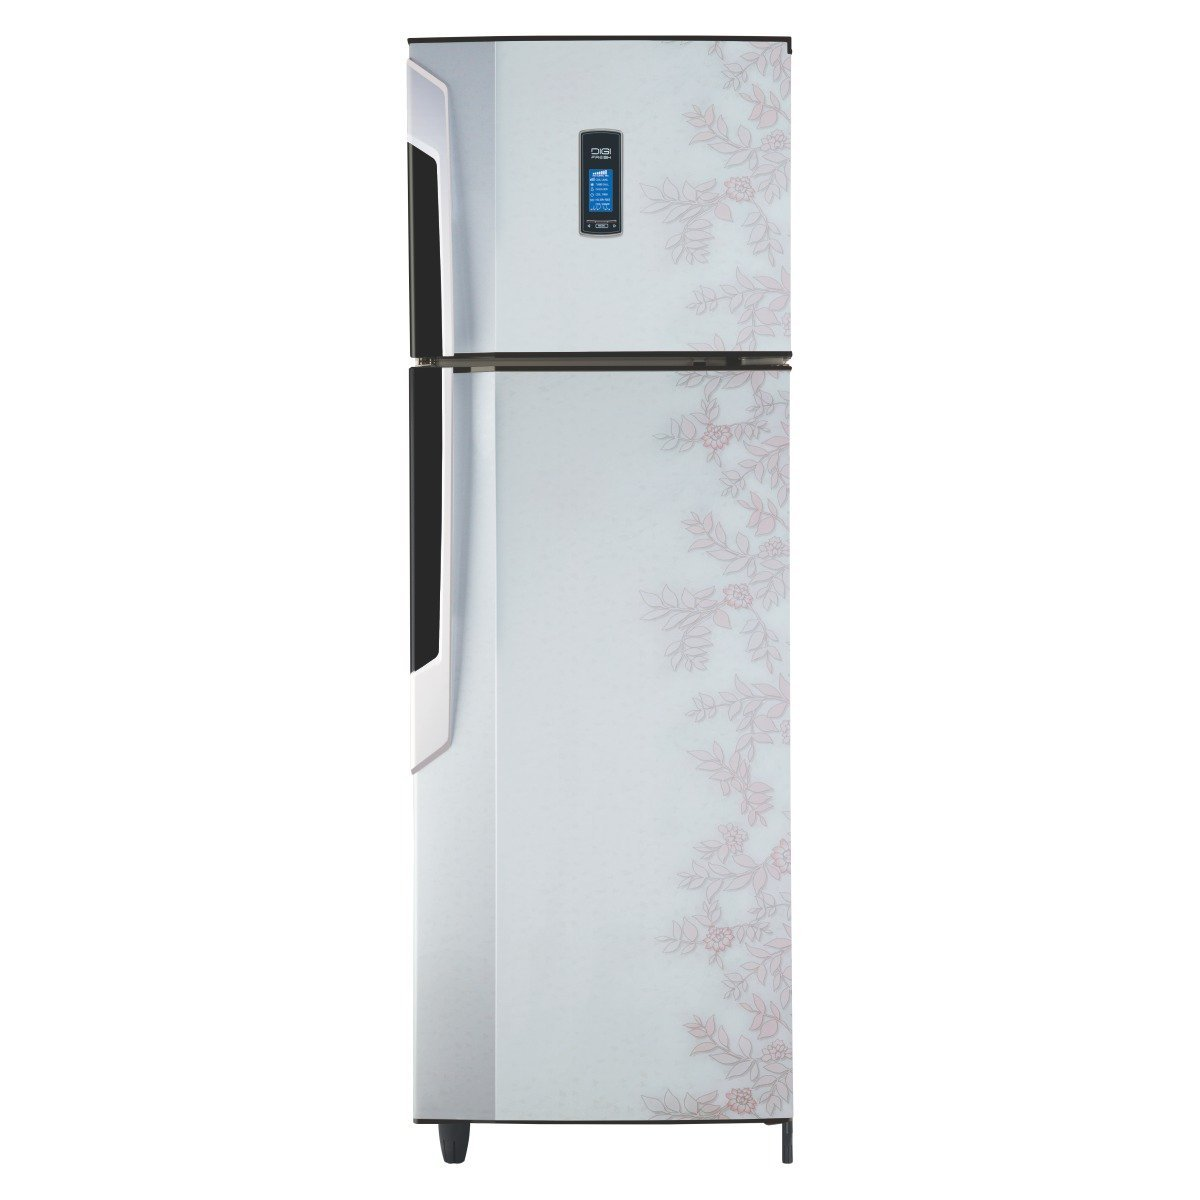 Godrej Double Door Refrigerator Rt Eon 343 P 3 3 Reviews